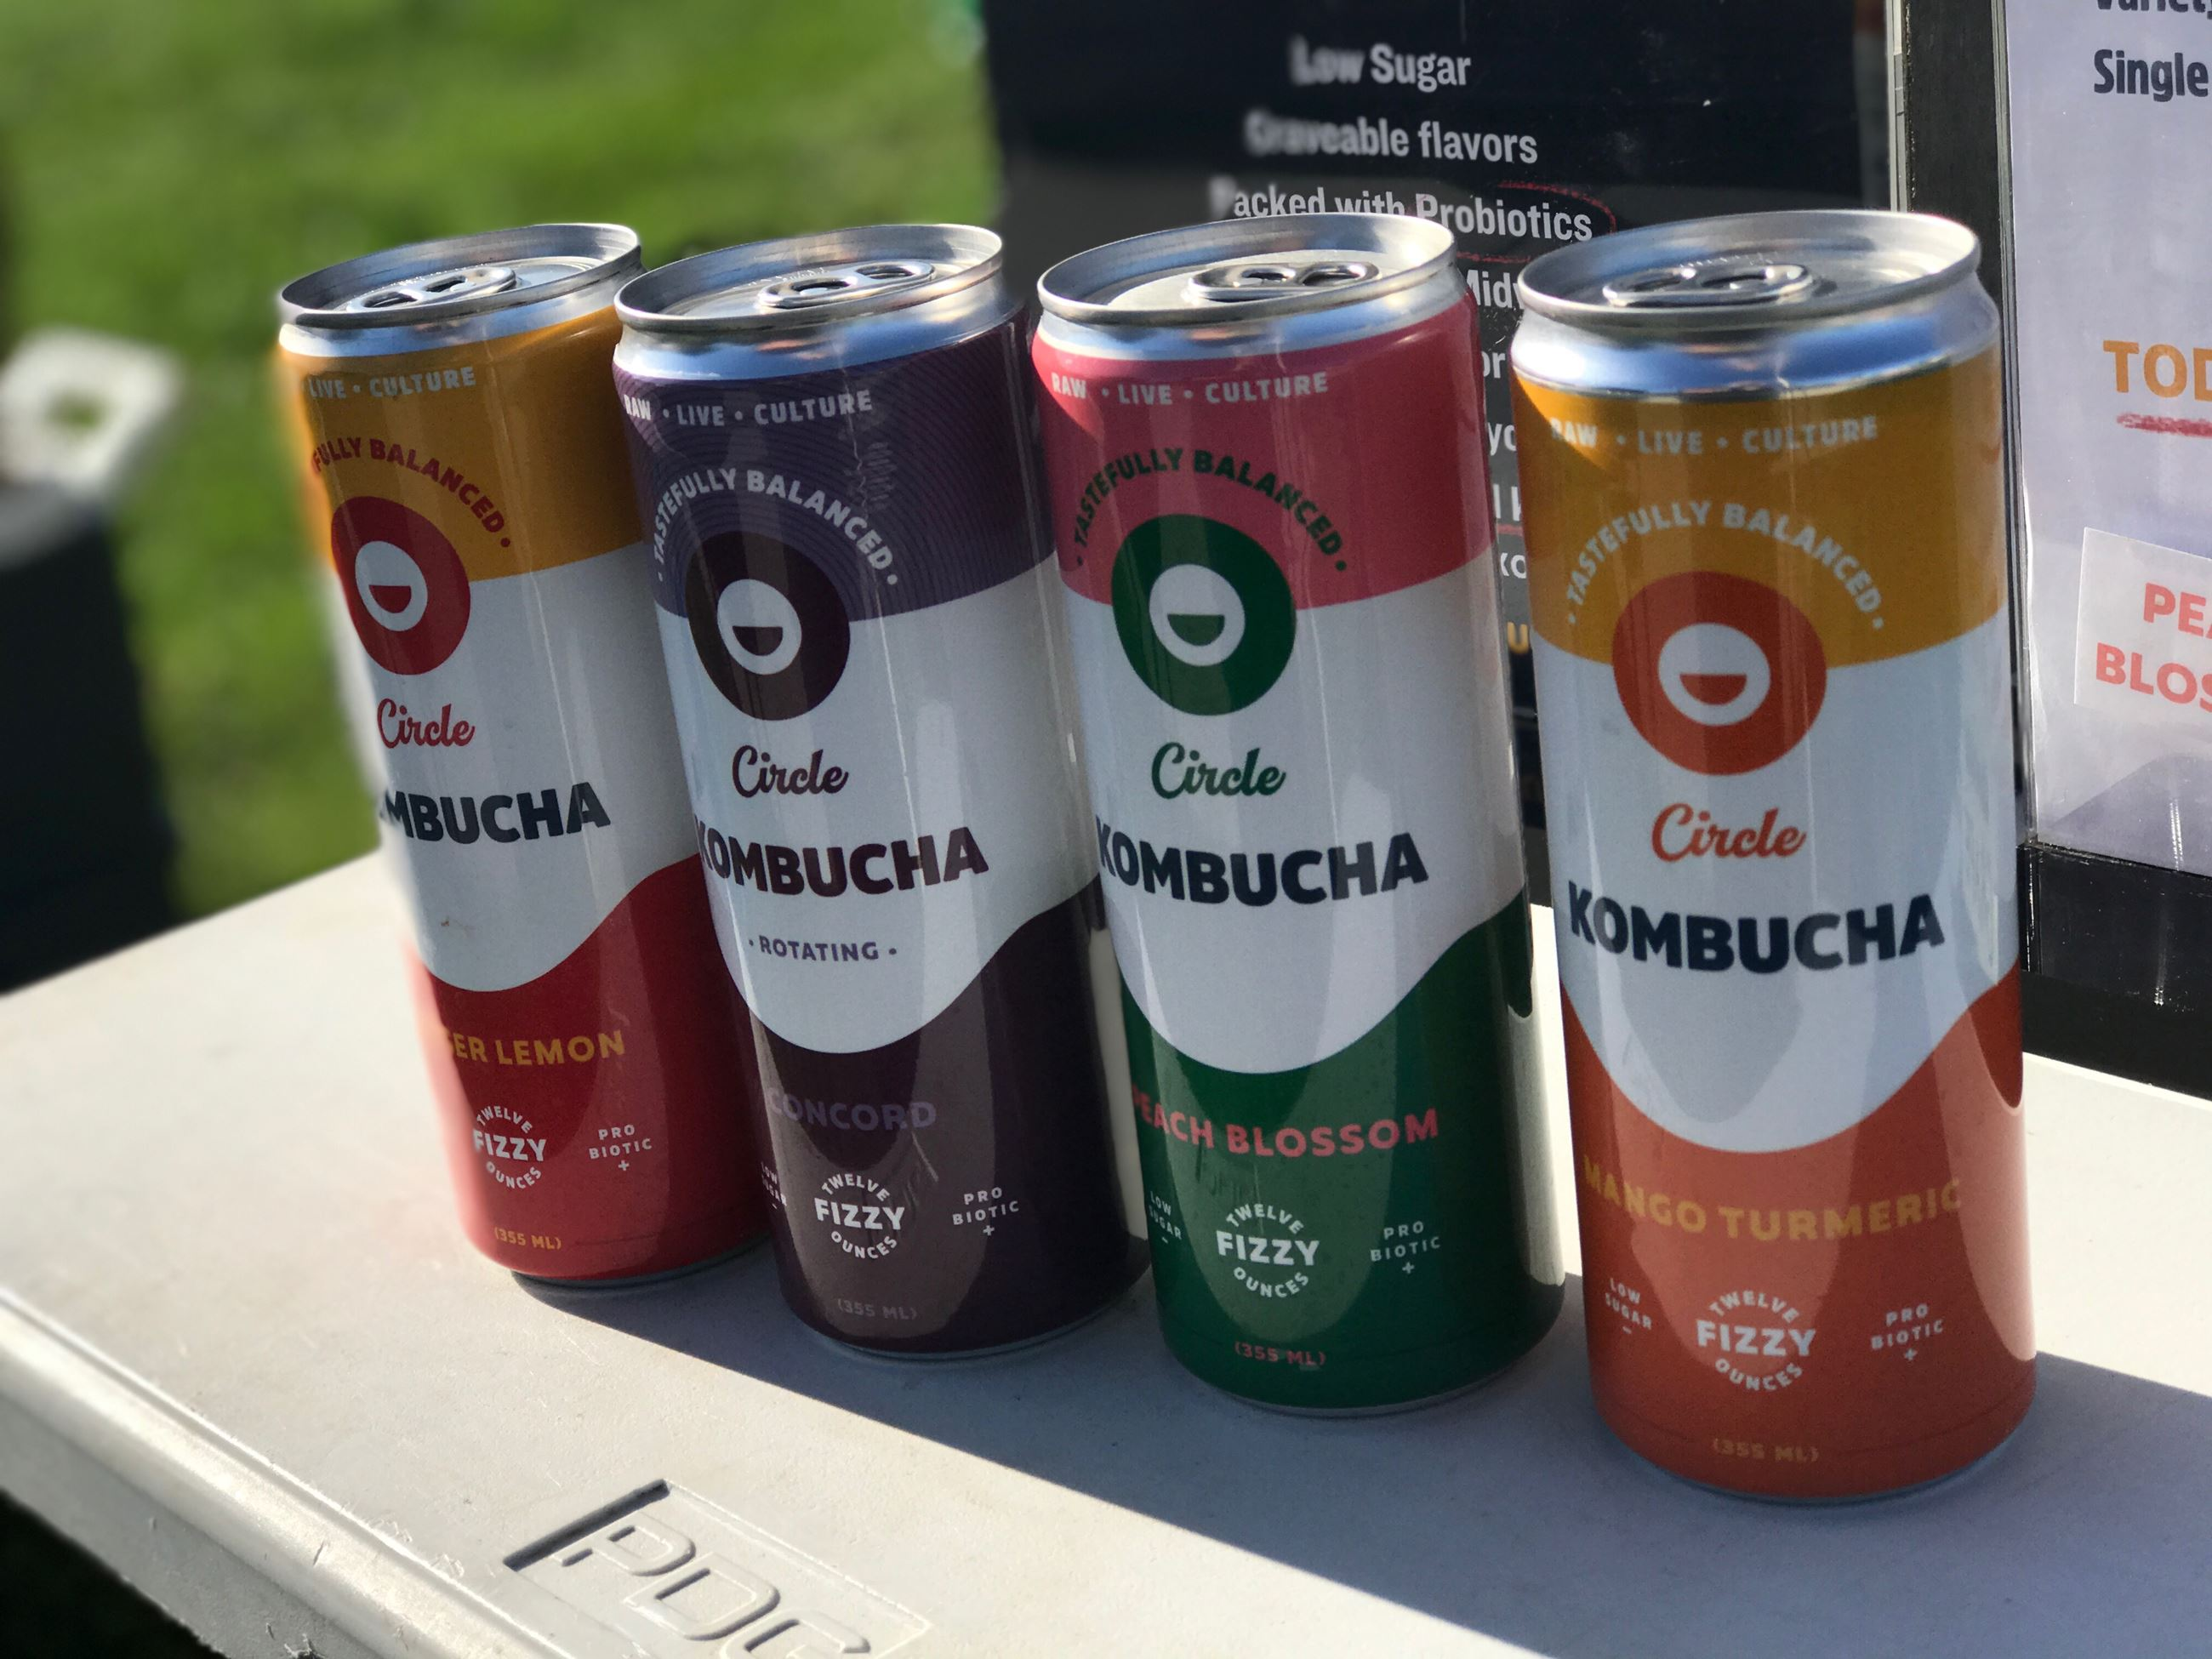 Circle Kombucha cans